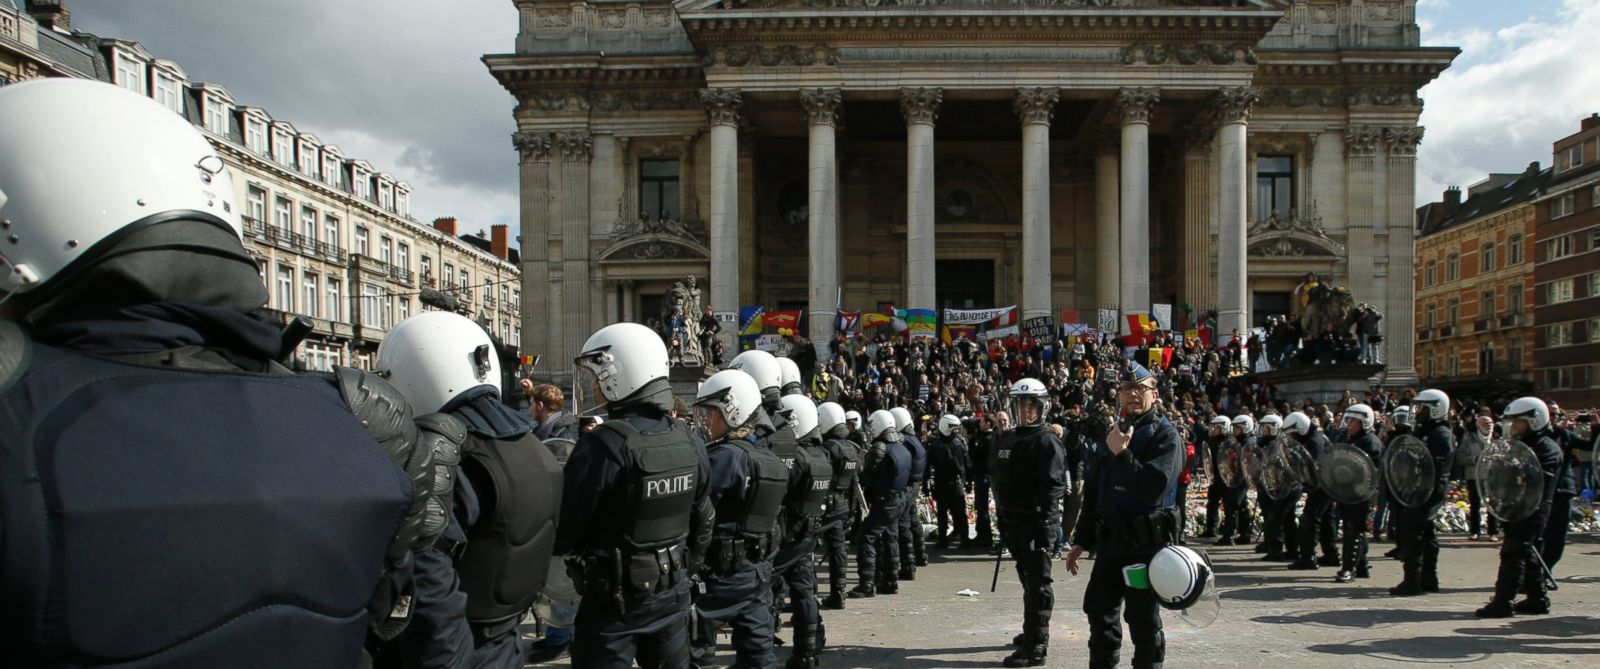 PHOTO: Police in riot gear sweep the area in front of the old bourse clear of right wing demonstrators next to one of the memorials to the victims of the recent Brussels attacks, at the Place de la Bourse in Brussels, March, 27, 2016.